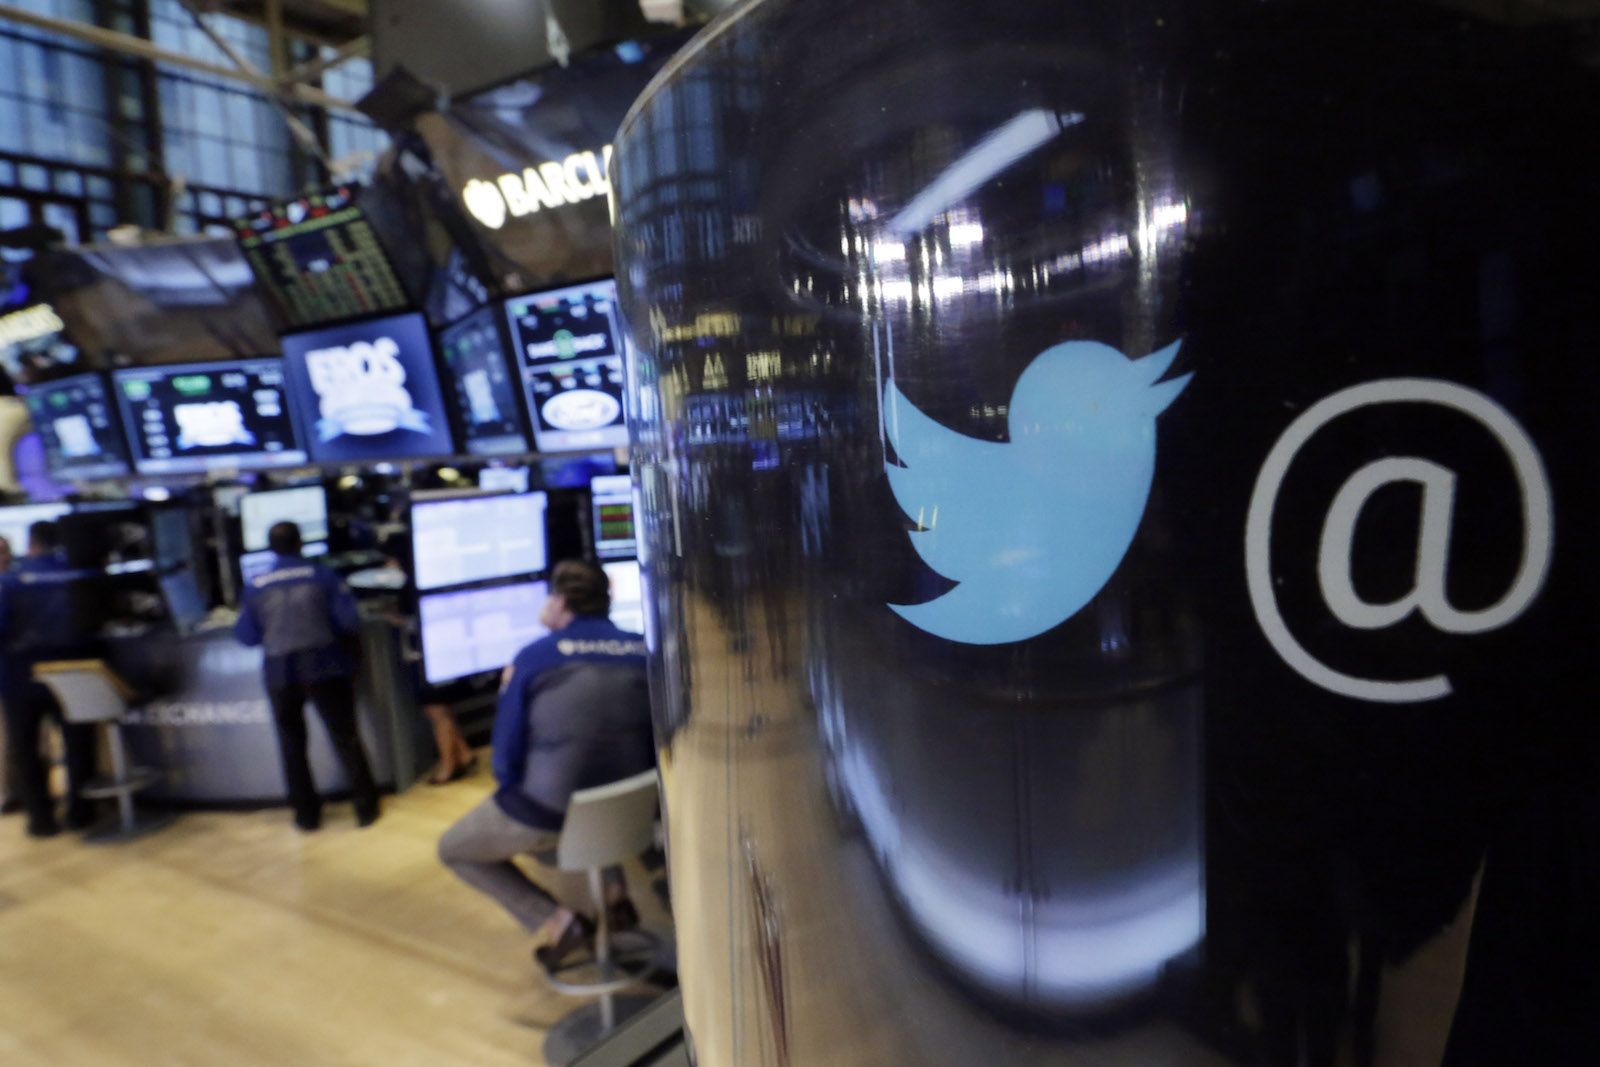 The Twitter logo appears on a phone post on the floor of the New York Stock Exchange, Tuesday, Oct. 13, 2015. Twitter is laying off up to 336 employees, signaling CEO Jack Dorsey's resolve to slash costs while the company struggles to make money. (AP Photo/Richard Drew)